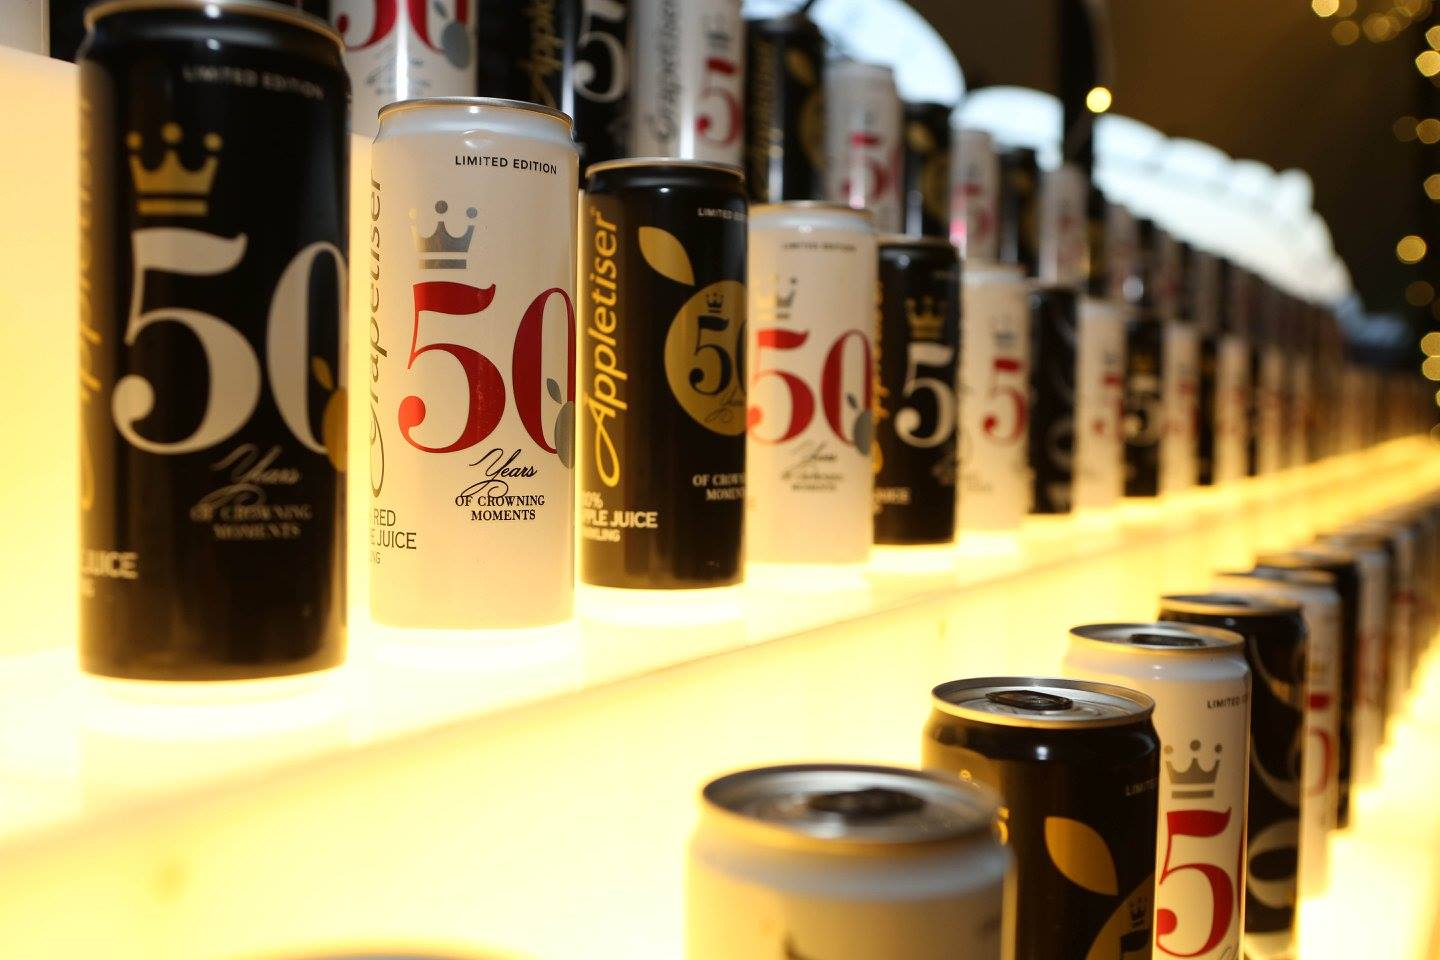 Appletiser's 50th Anniversary Celebration